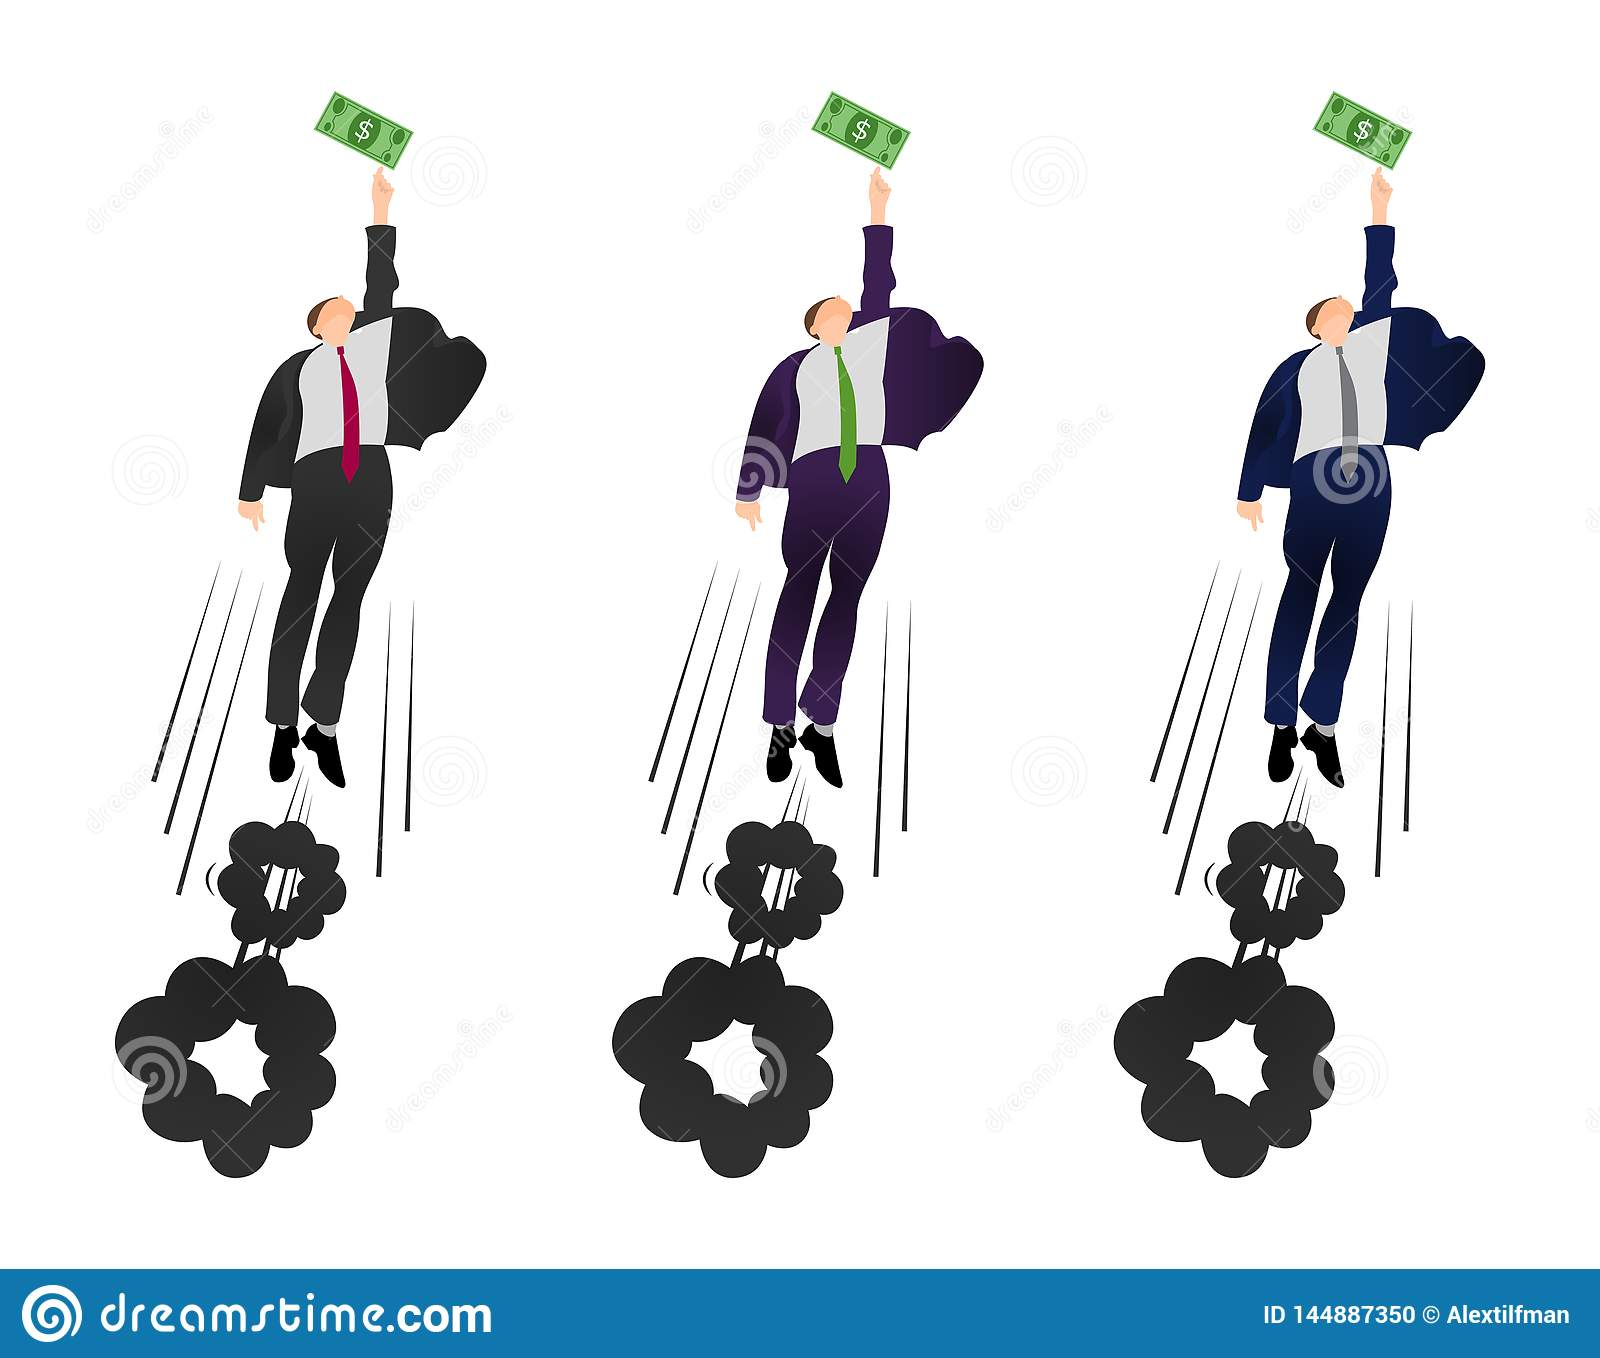 Illustration of  vector flat businessman trying to get a dollar. Being motivated by money. Earning much more money. Pursuit of mon